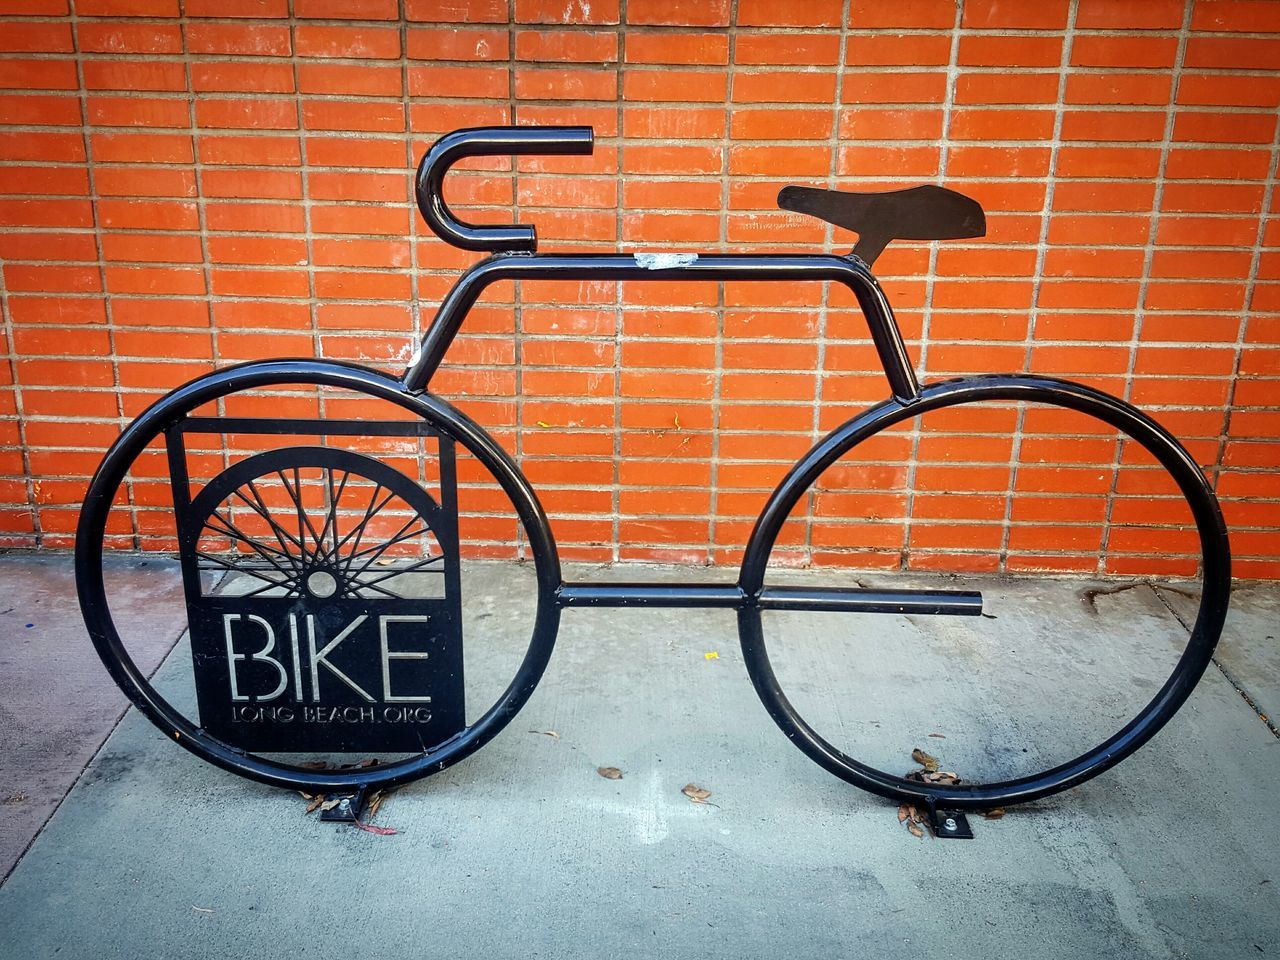 Bike On Perspective Bicycle Fine Art Street Art Abstract Concrete Jungle Bike Sidewalk Brick Wall Eyeemphoto EyeEm From My Point Of View Eye4photography  Photography Is My Therapy Outdoors ForTheLoveOfPhotography Pivotal Ideas